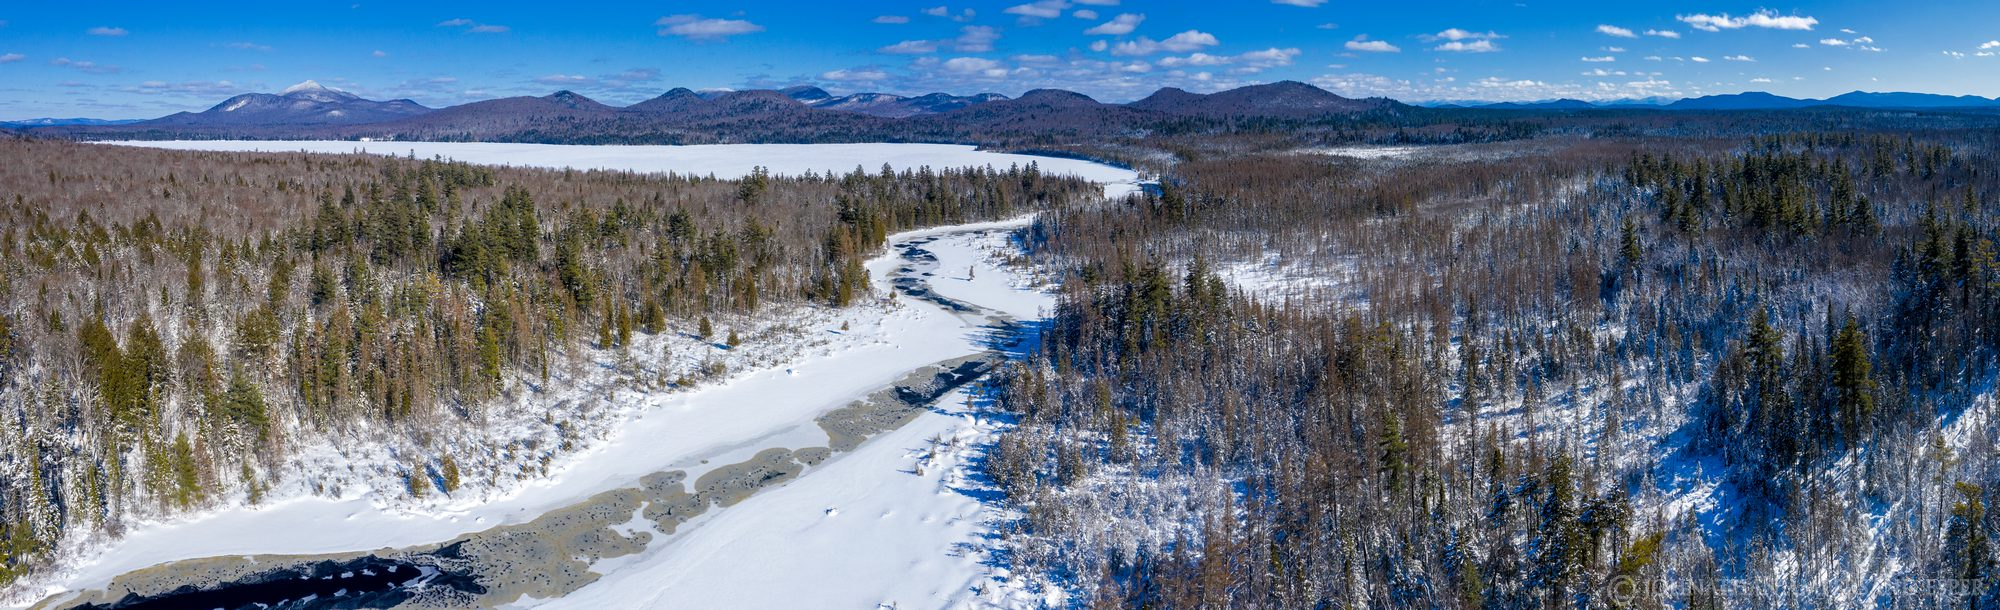 Meacham Lake,Meacham Lake outlet,outlet,channel,March,2020,winter,late winter,sunny,drone,panorama